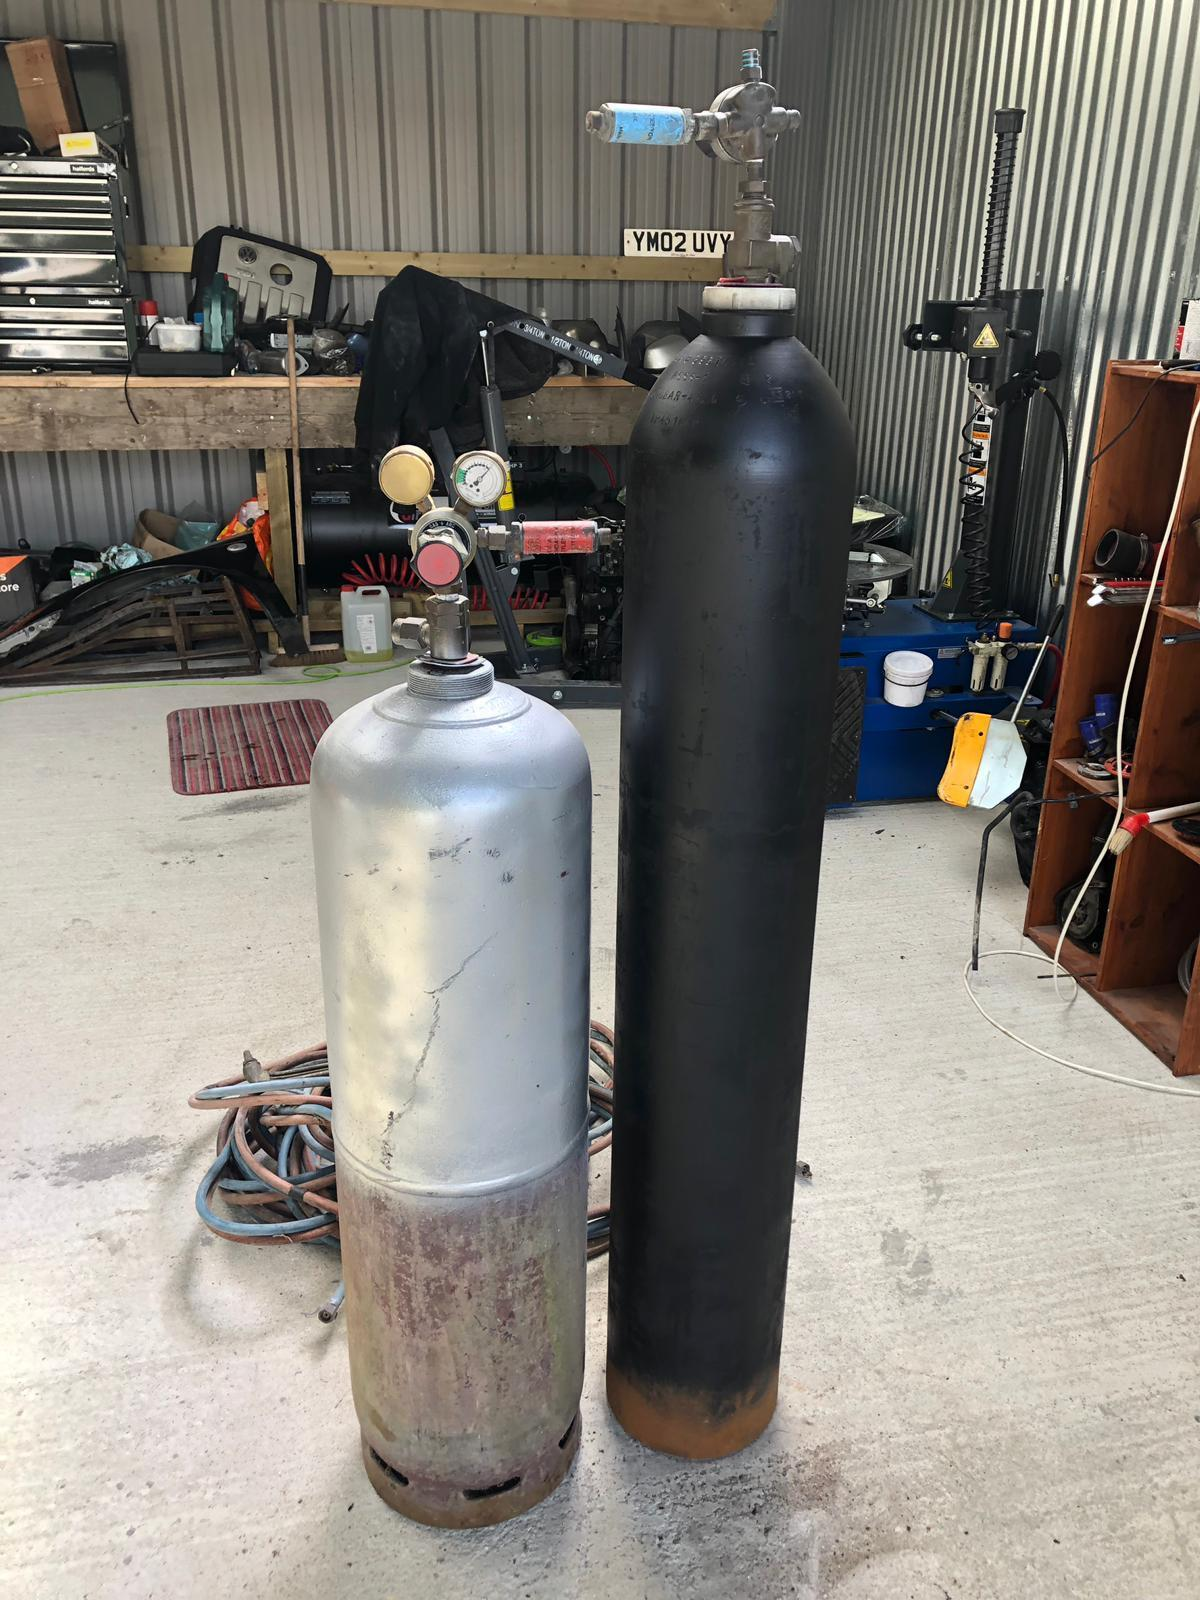 gas axe and oxyacetylene torch and bottles - Newport Isle of